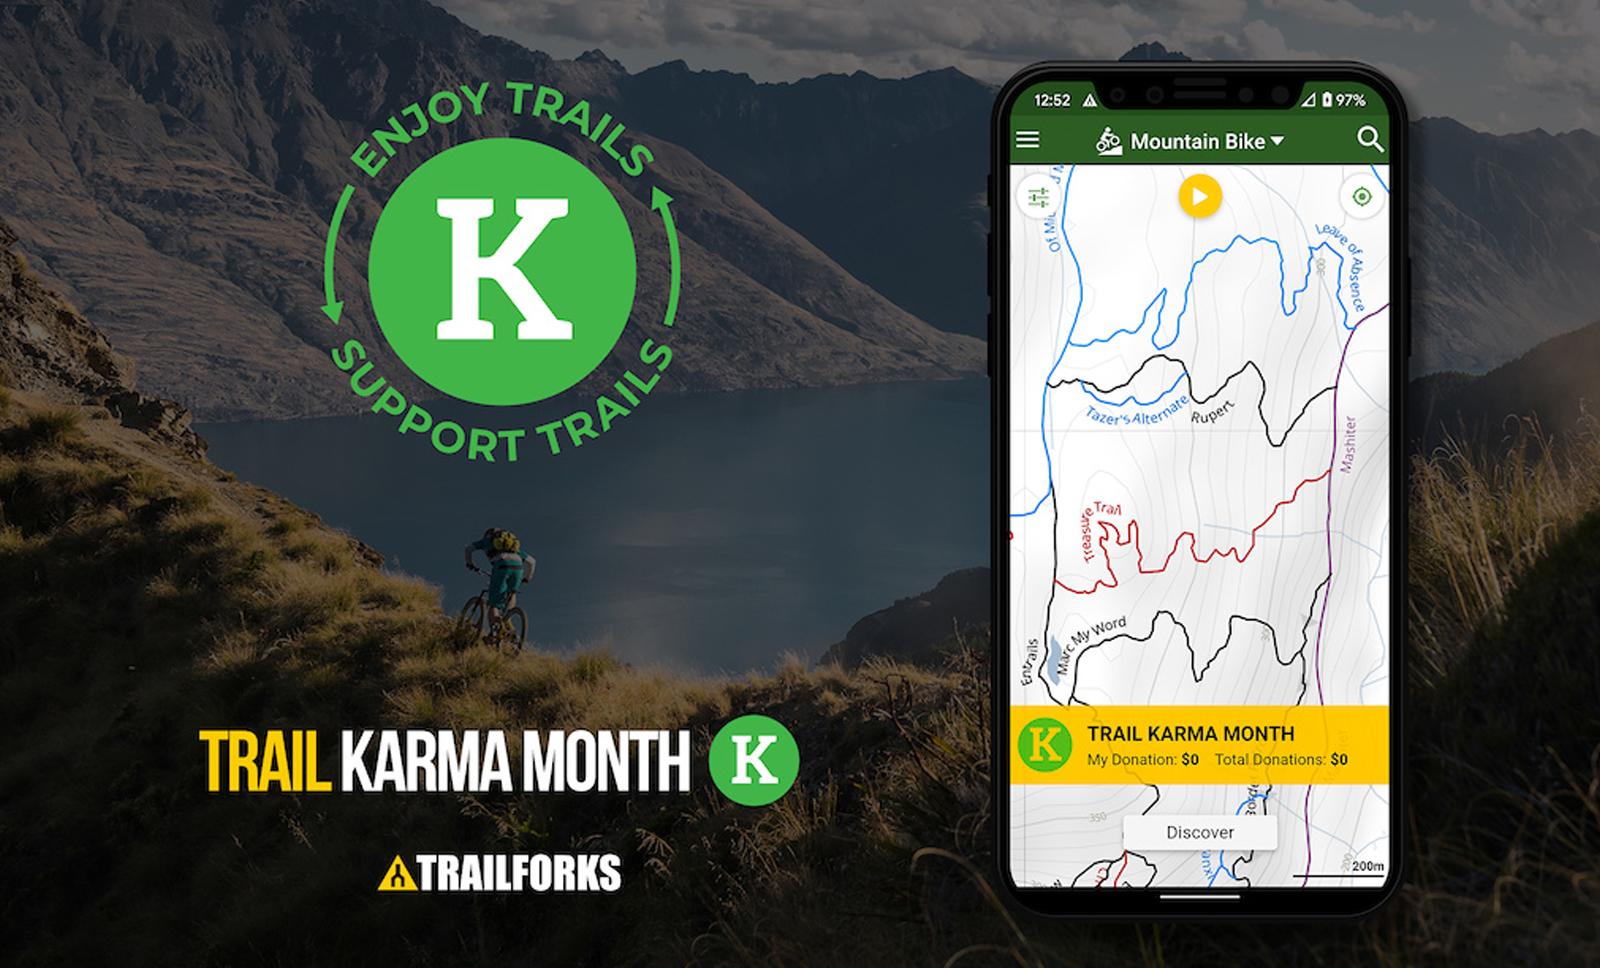 Trail Karma Month, XC Field Test, MTB on a budget and more: Pinkbike Digest